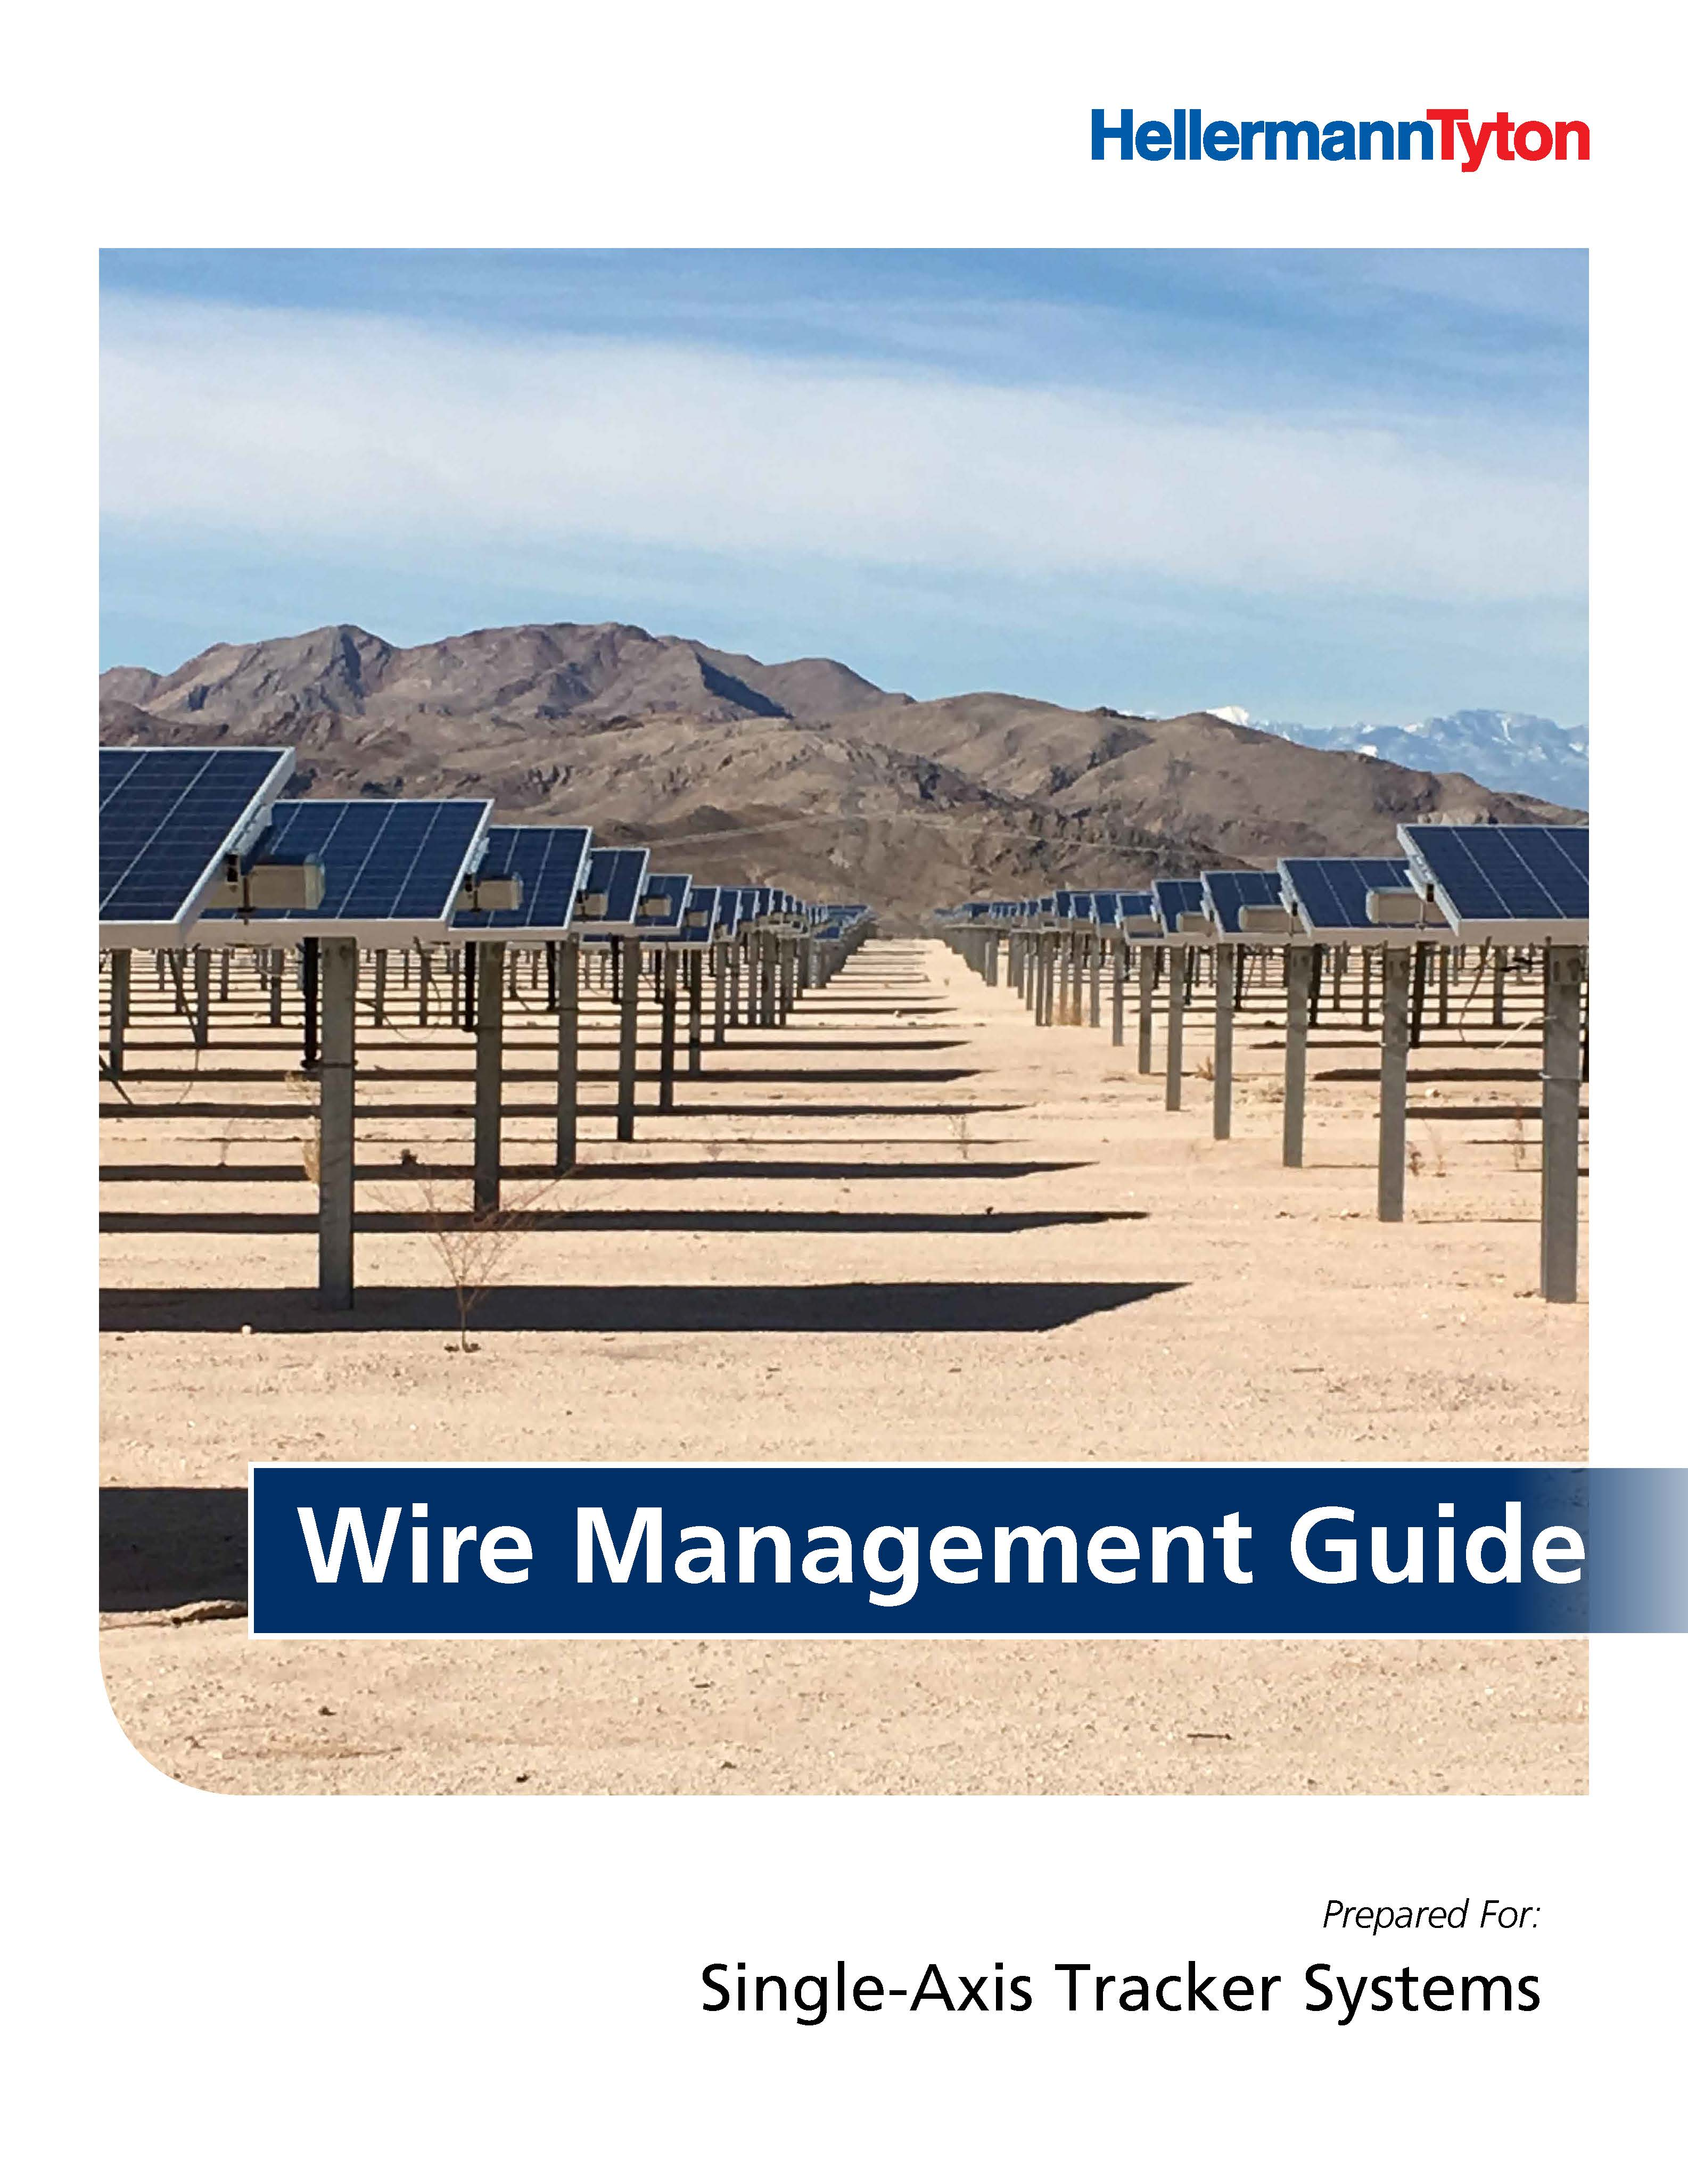 Wire Management Guide - Single-Axis Tracker Systems